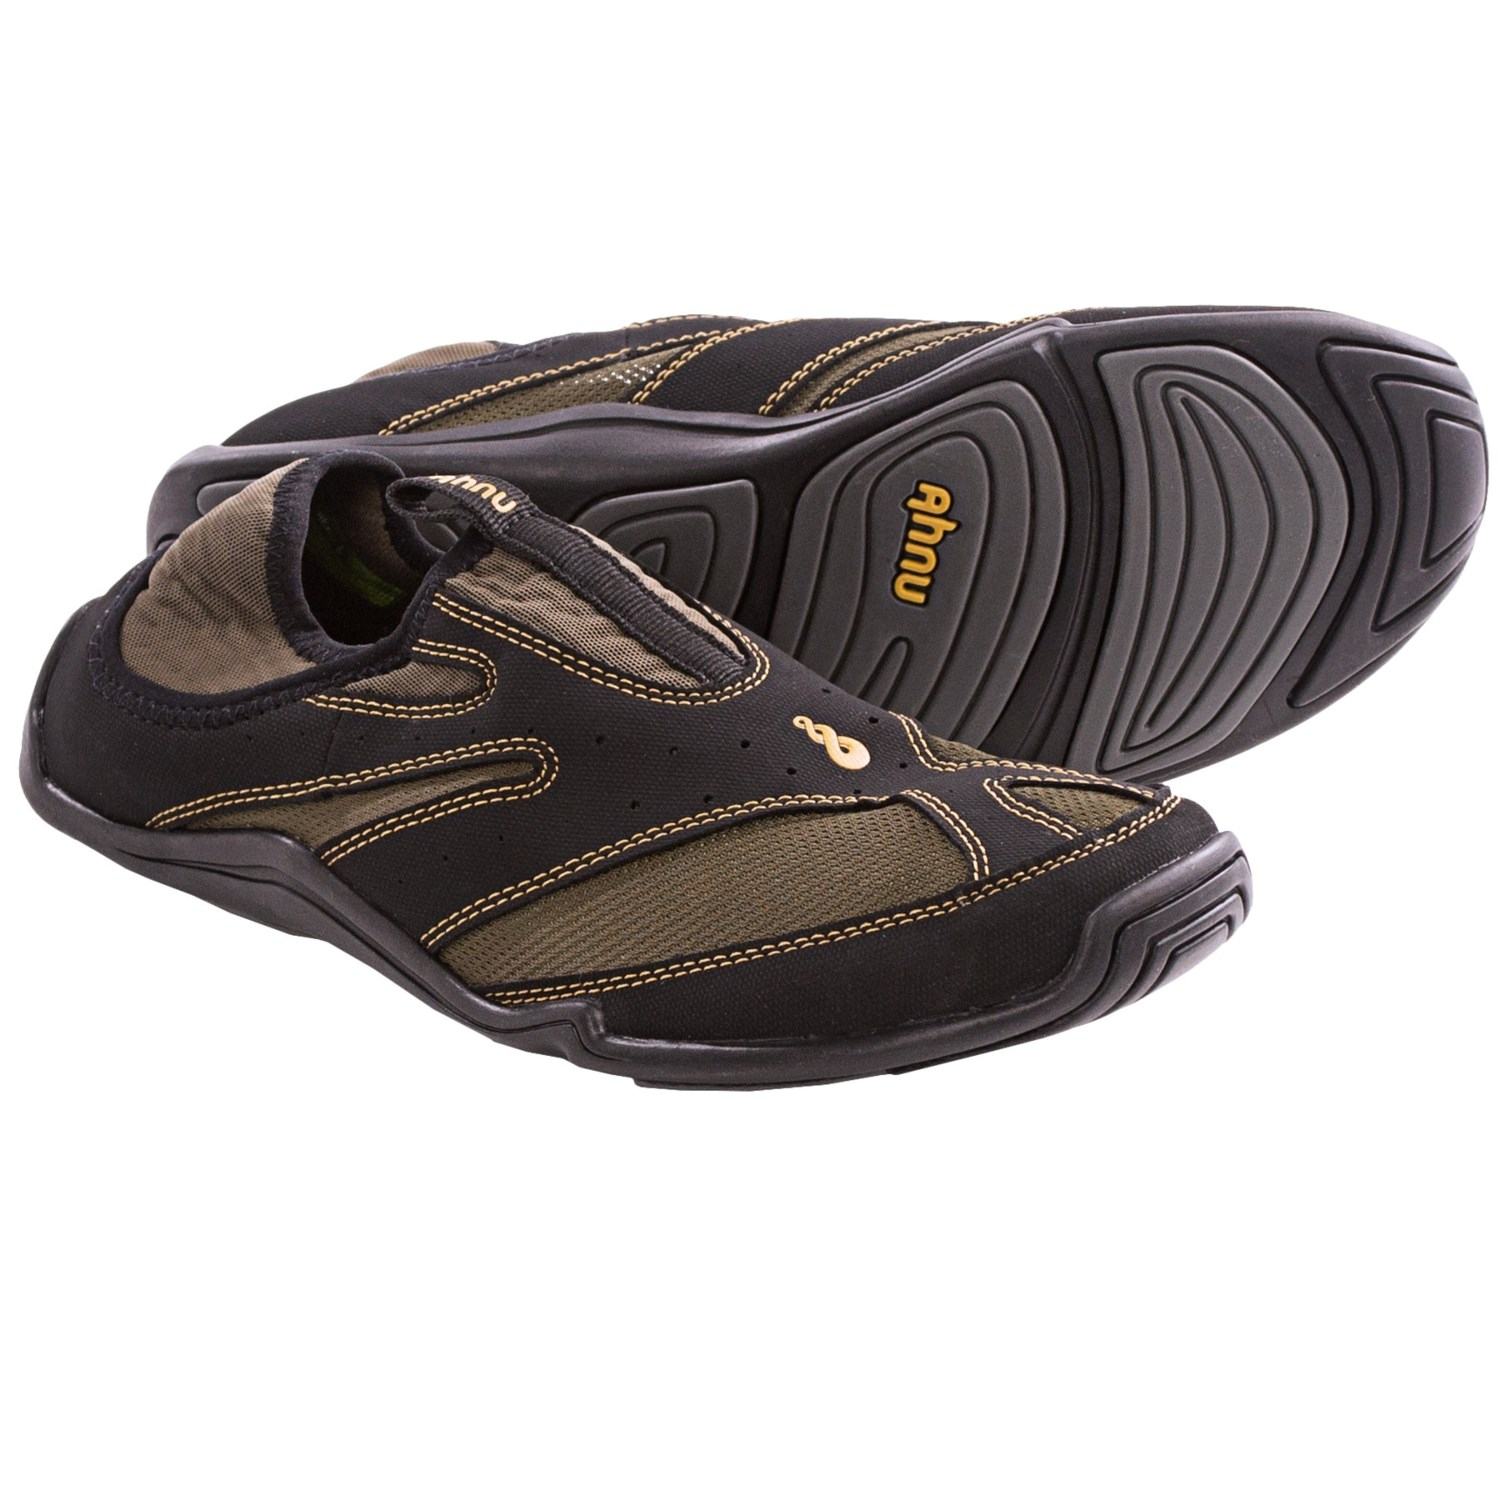 Ahnu Delta Water Shoes Reviews